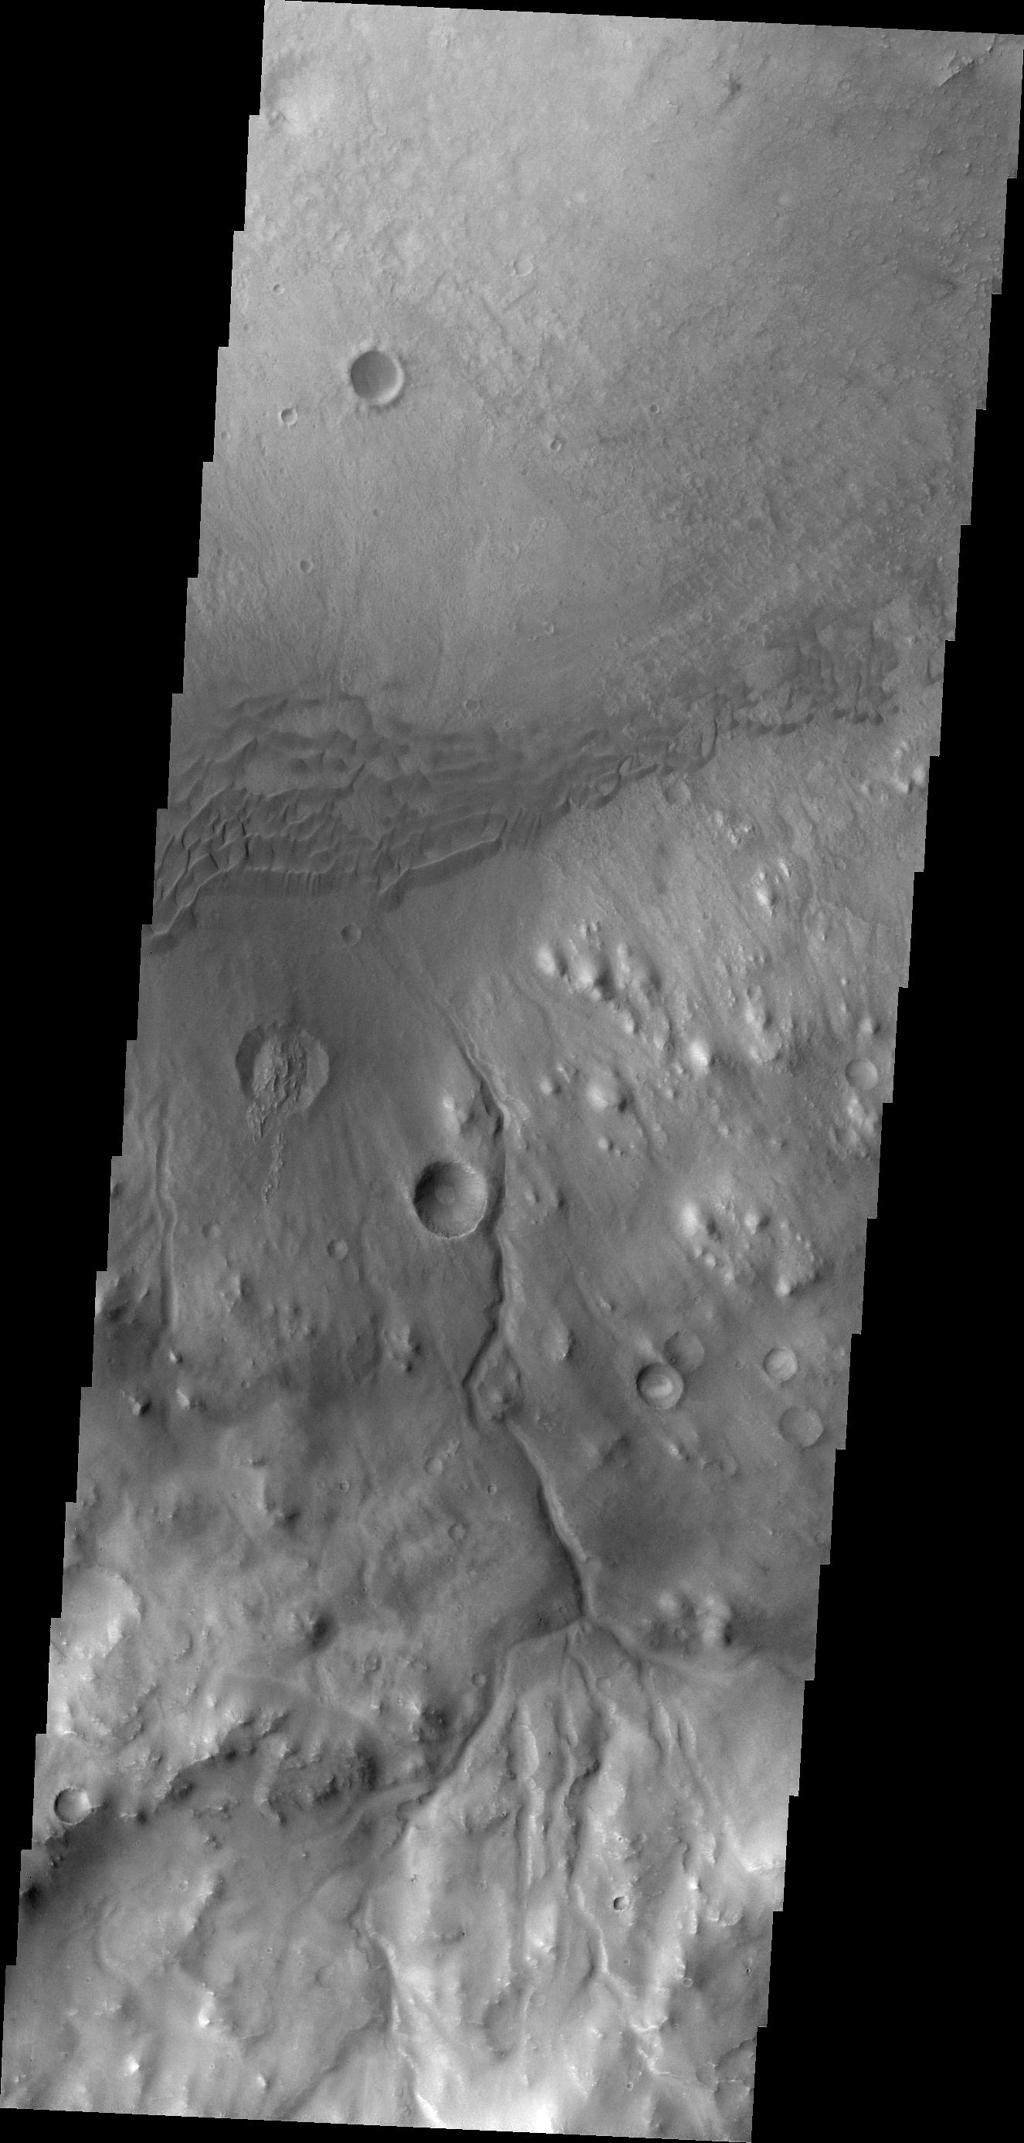 This image, taken by NASA's 2001 Mars Odyssey spacecraft, shows a portion of the rim and floor of Gale Crater. The crater rim is dissected by a channel, and dunes are located on the floor at the rim margin.